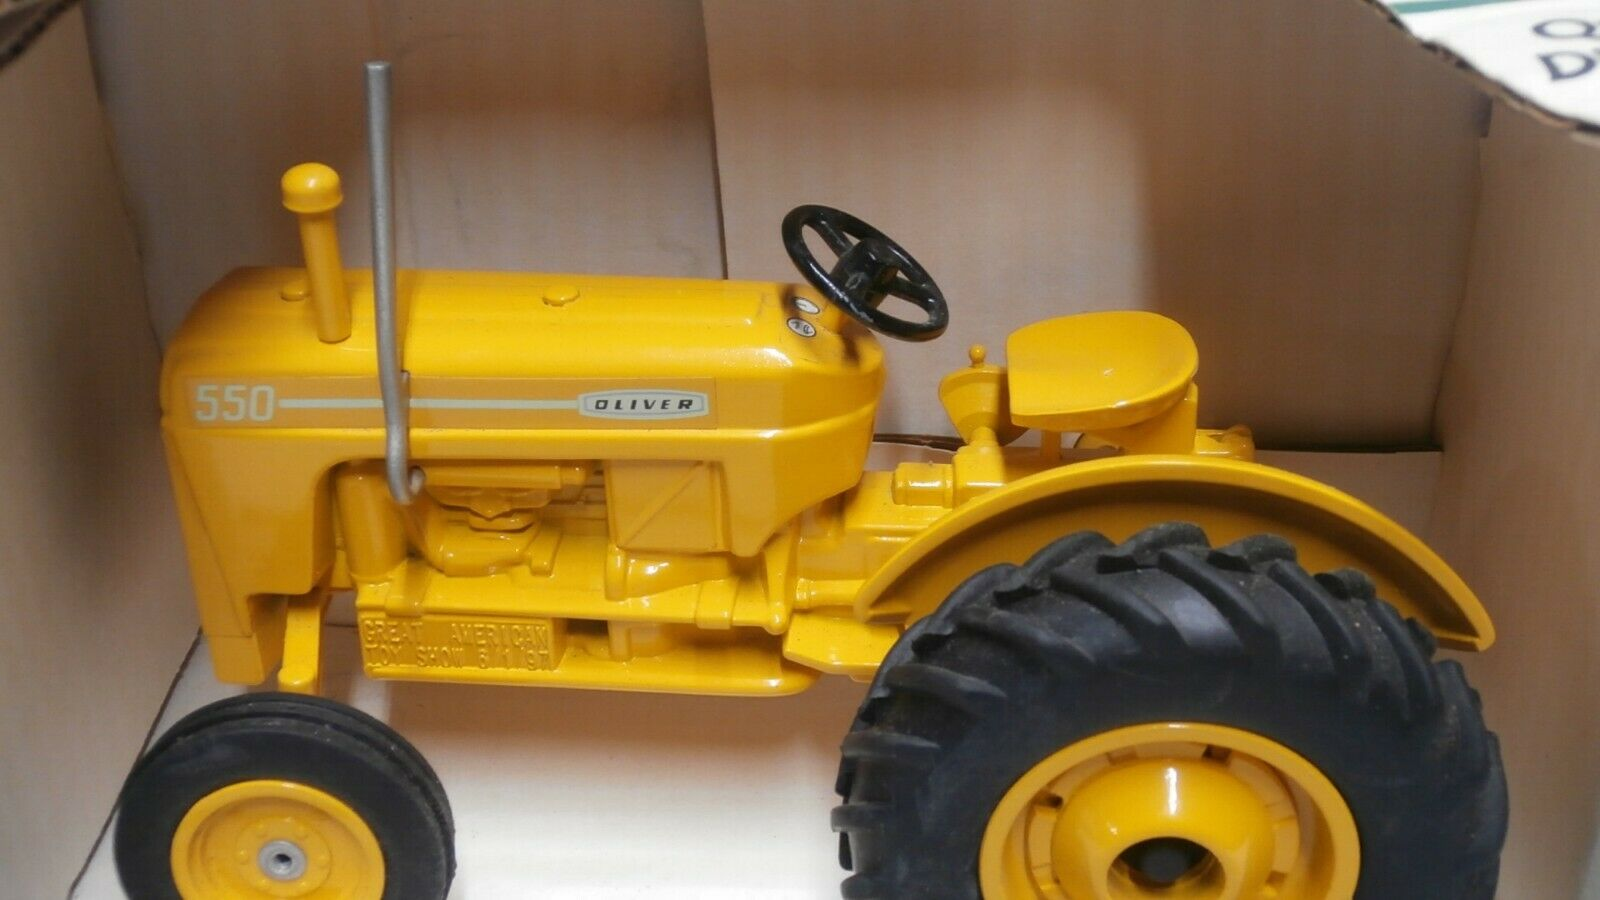 Yellow Oliver The 550 Tractor SpecCast 1 16 Scale Die-Cast